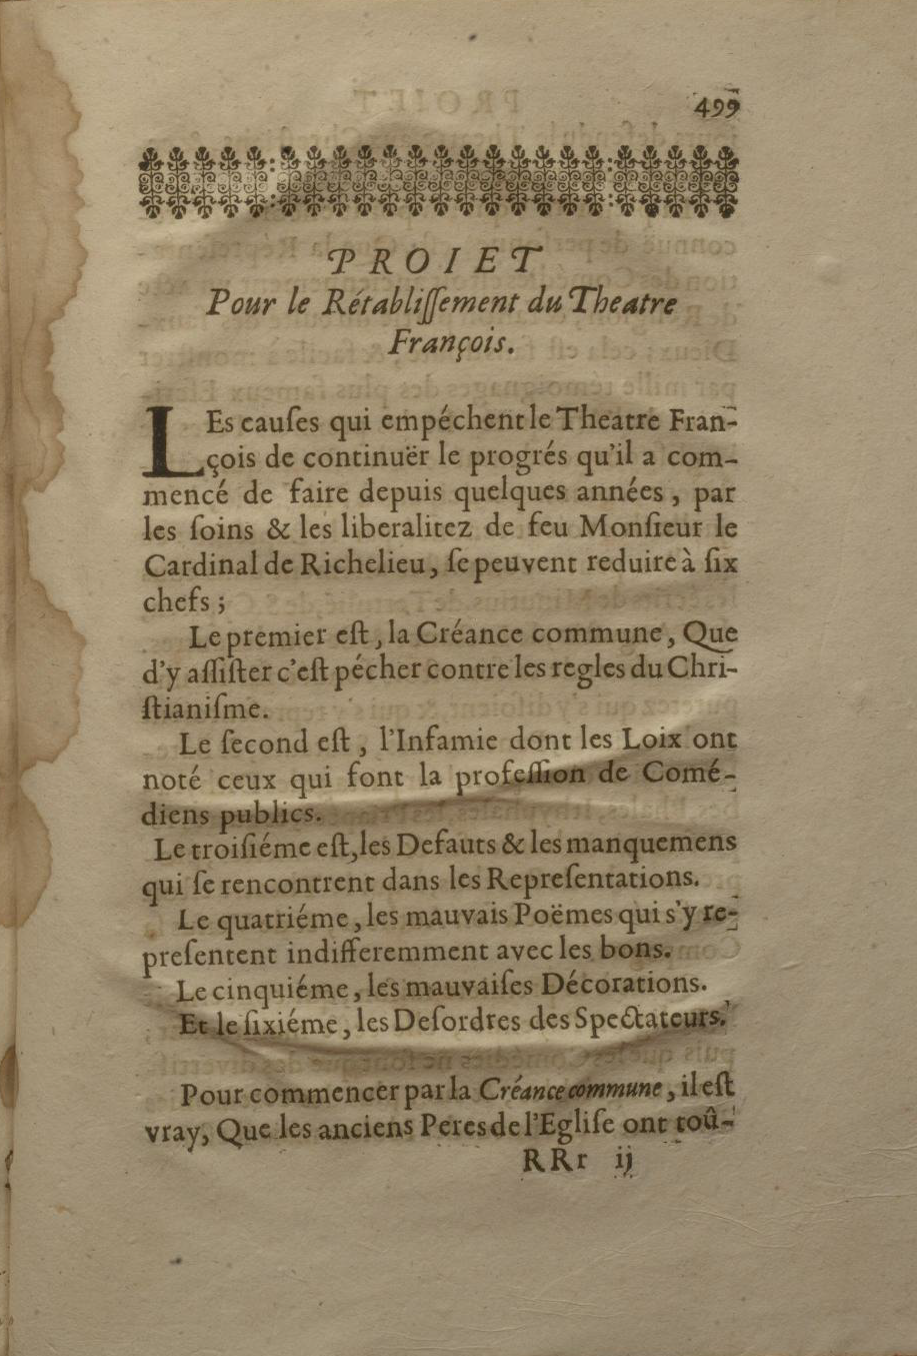 Scanned image of a page from La pratique du theatre. Long description follows the image